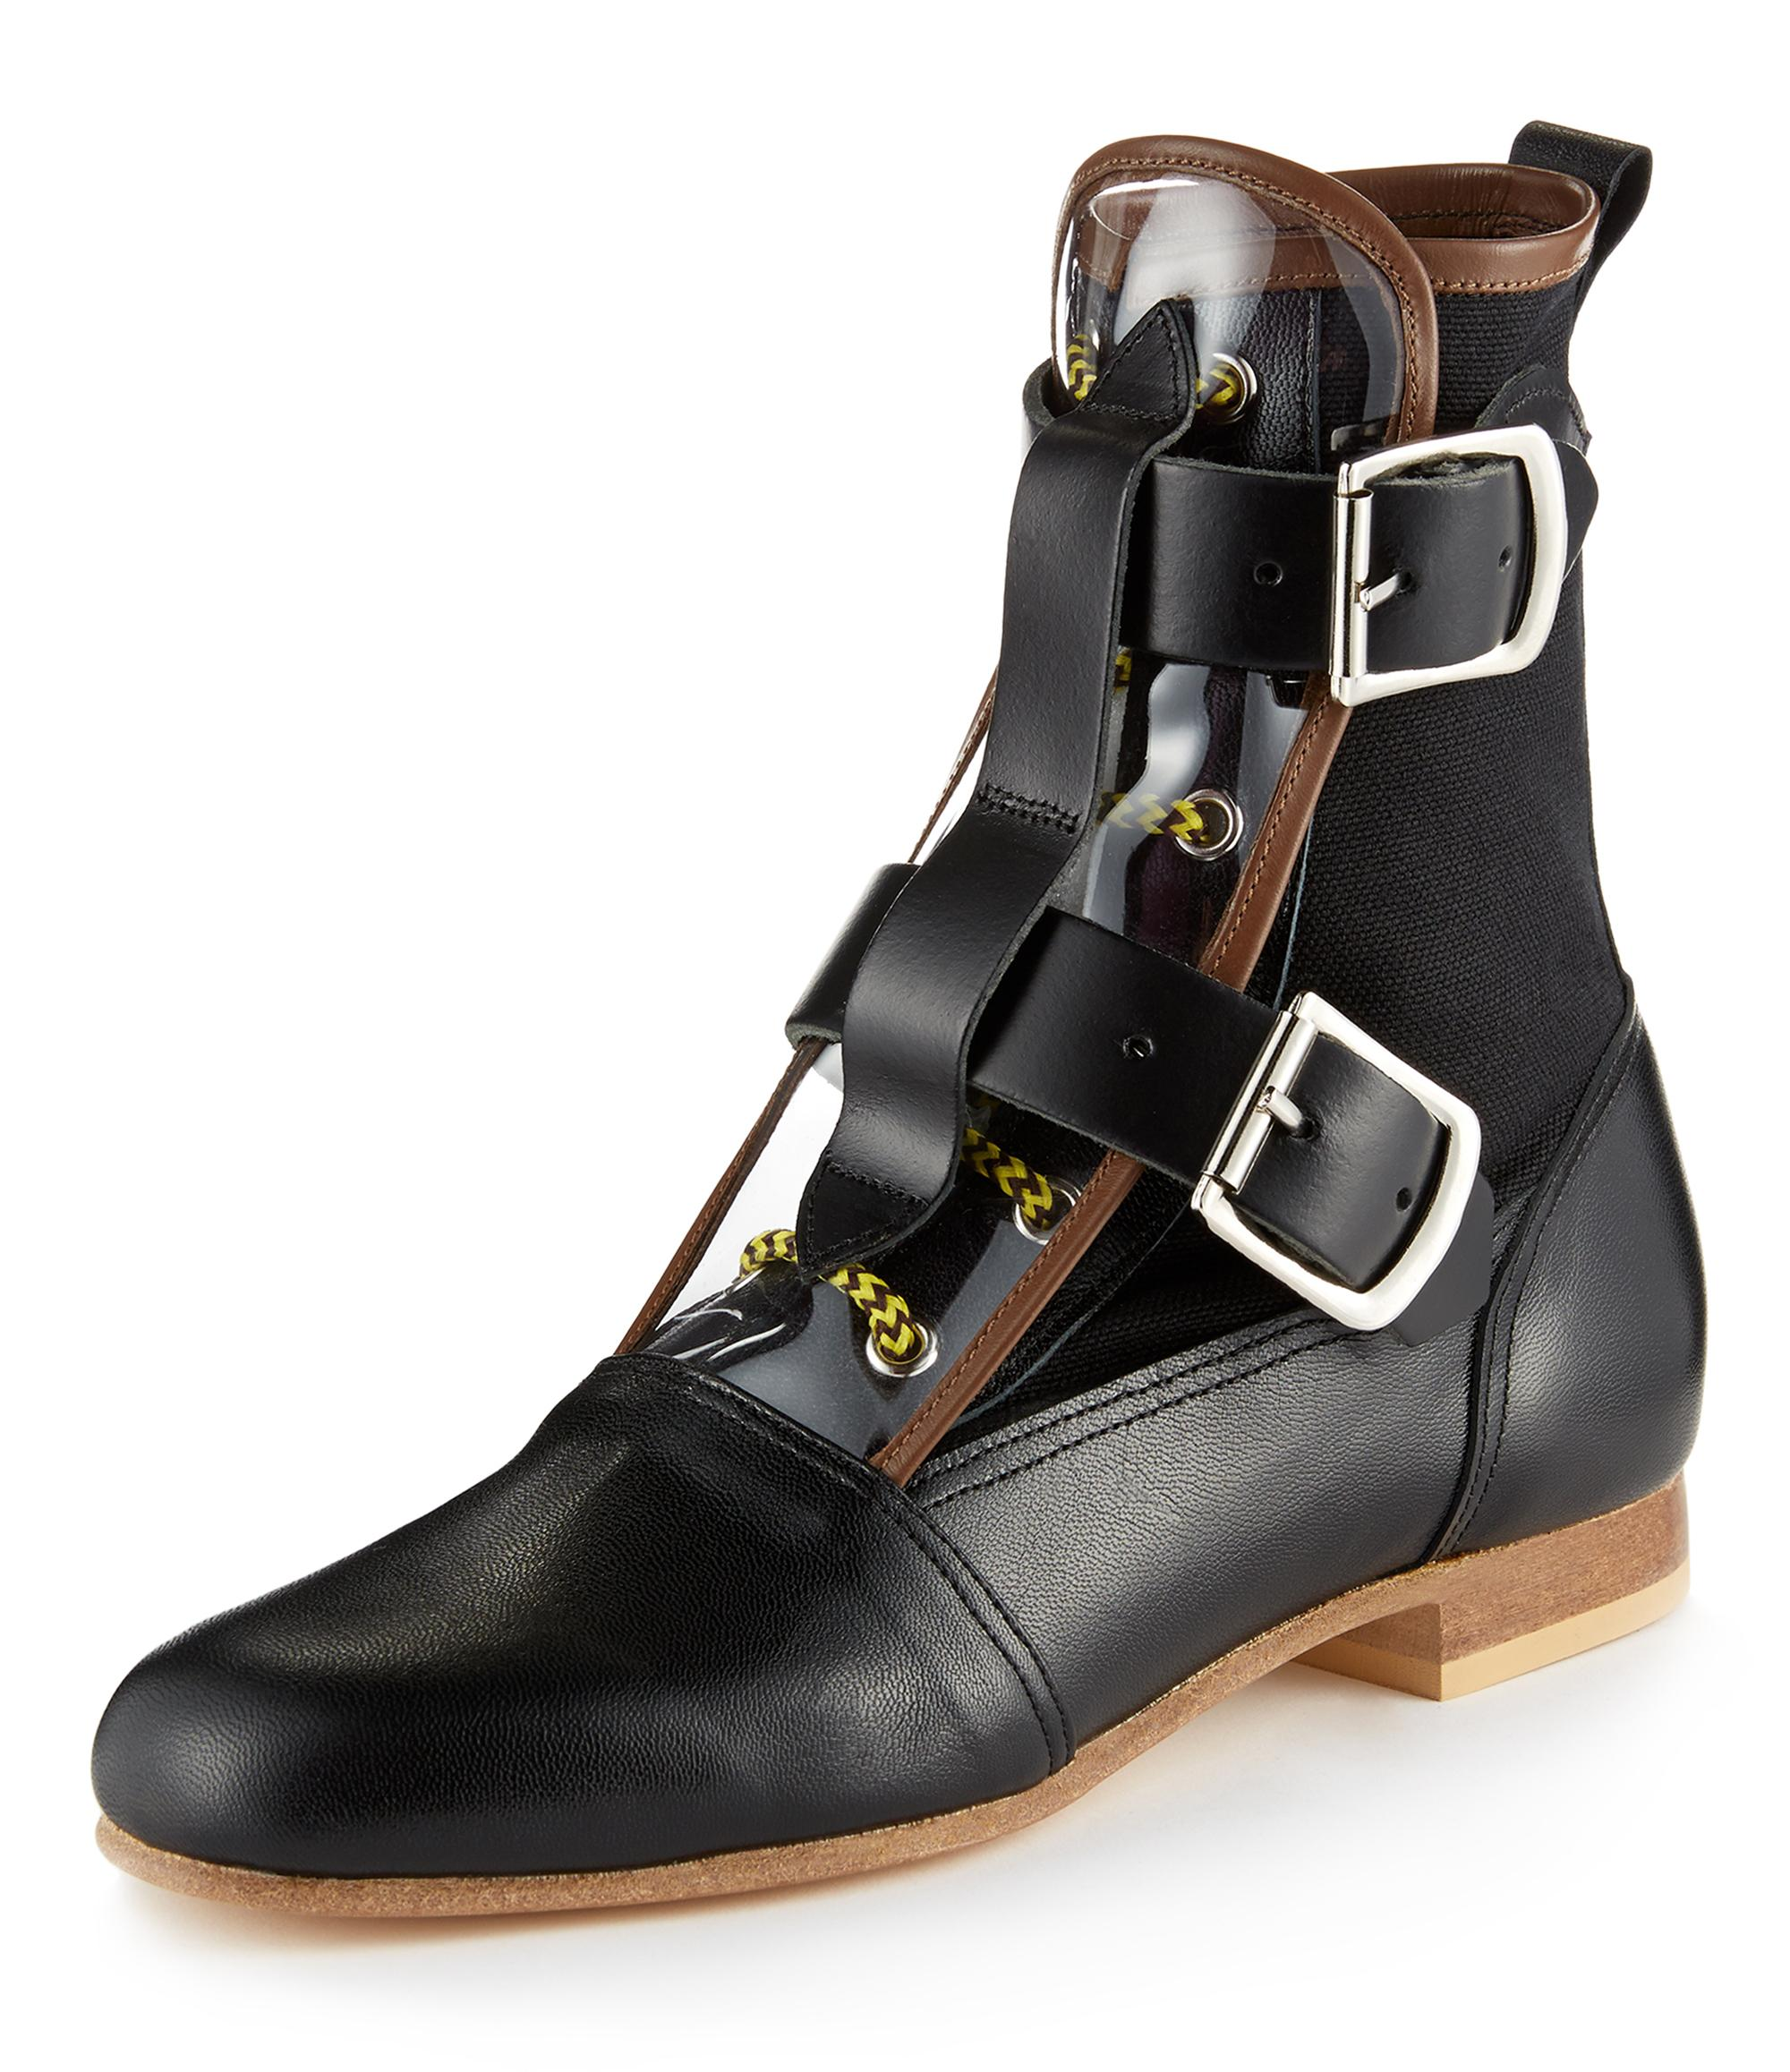 Vivienne Westwood Seditionaries Boot Special Edition ...